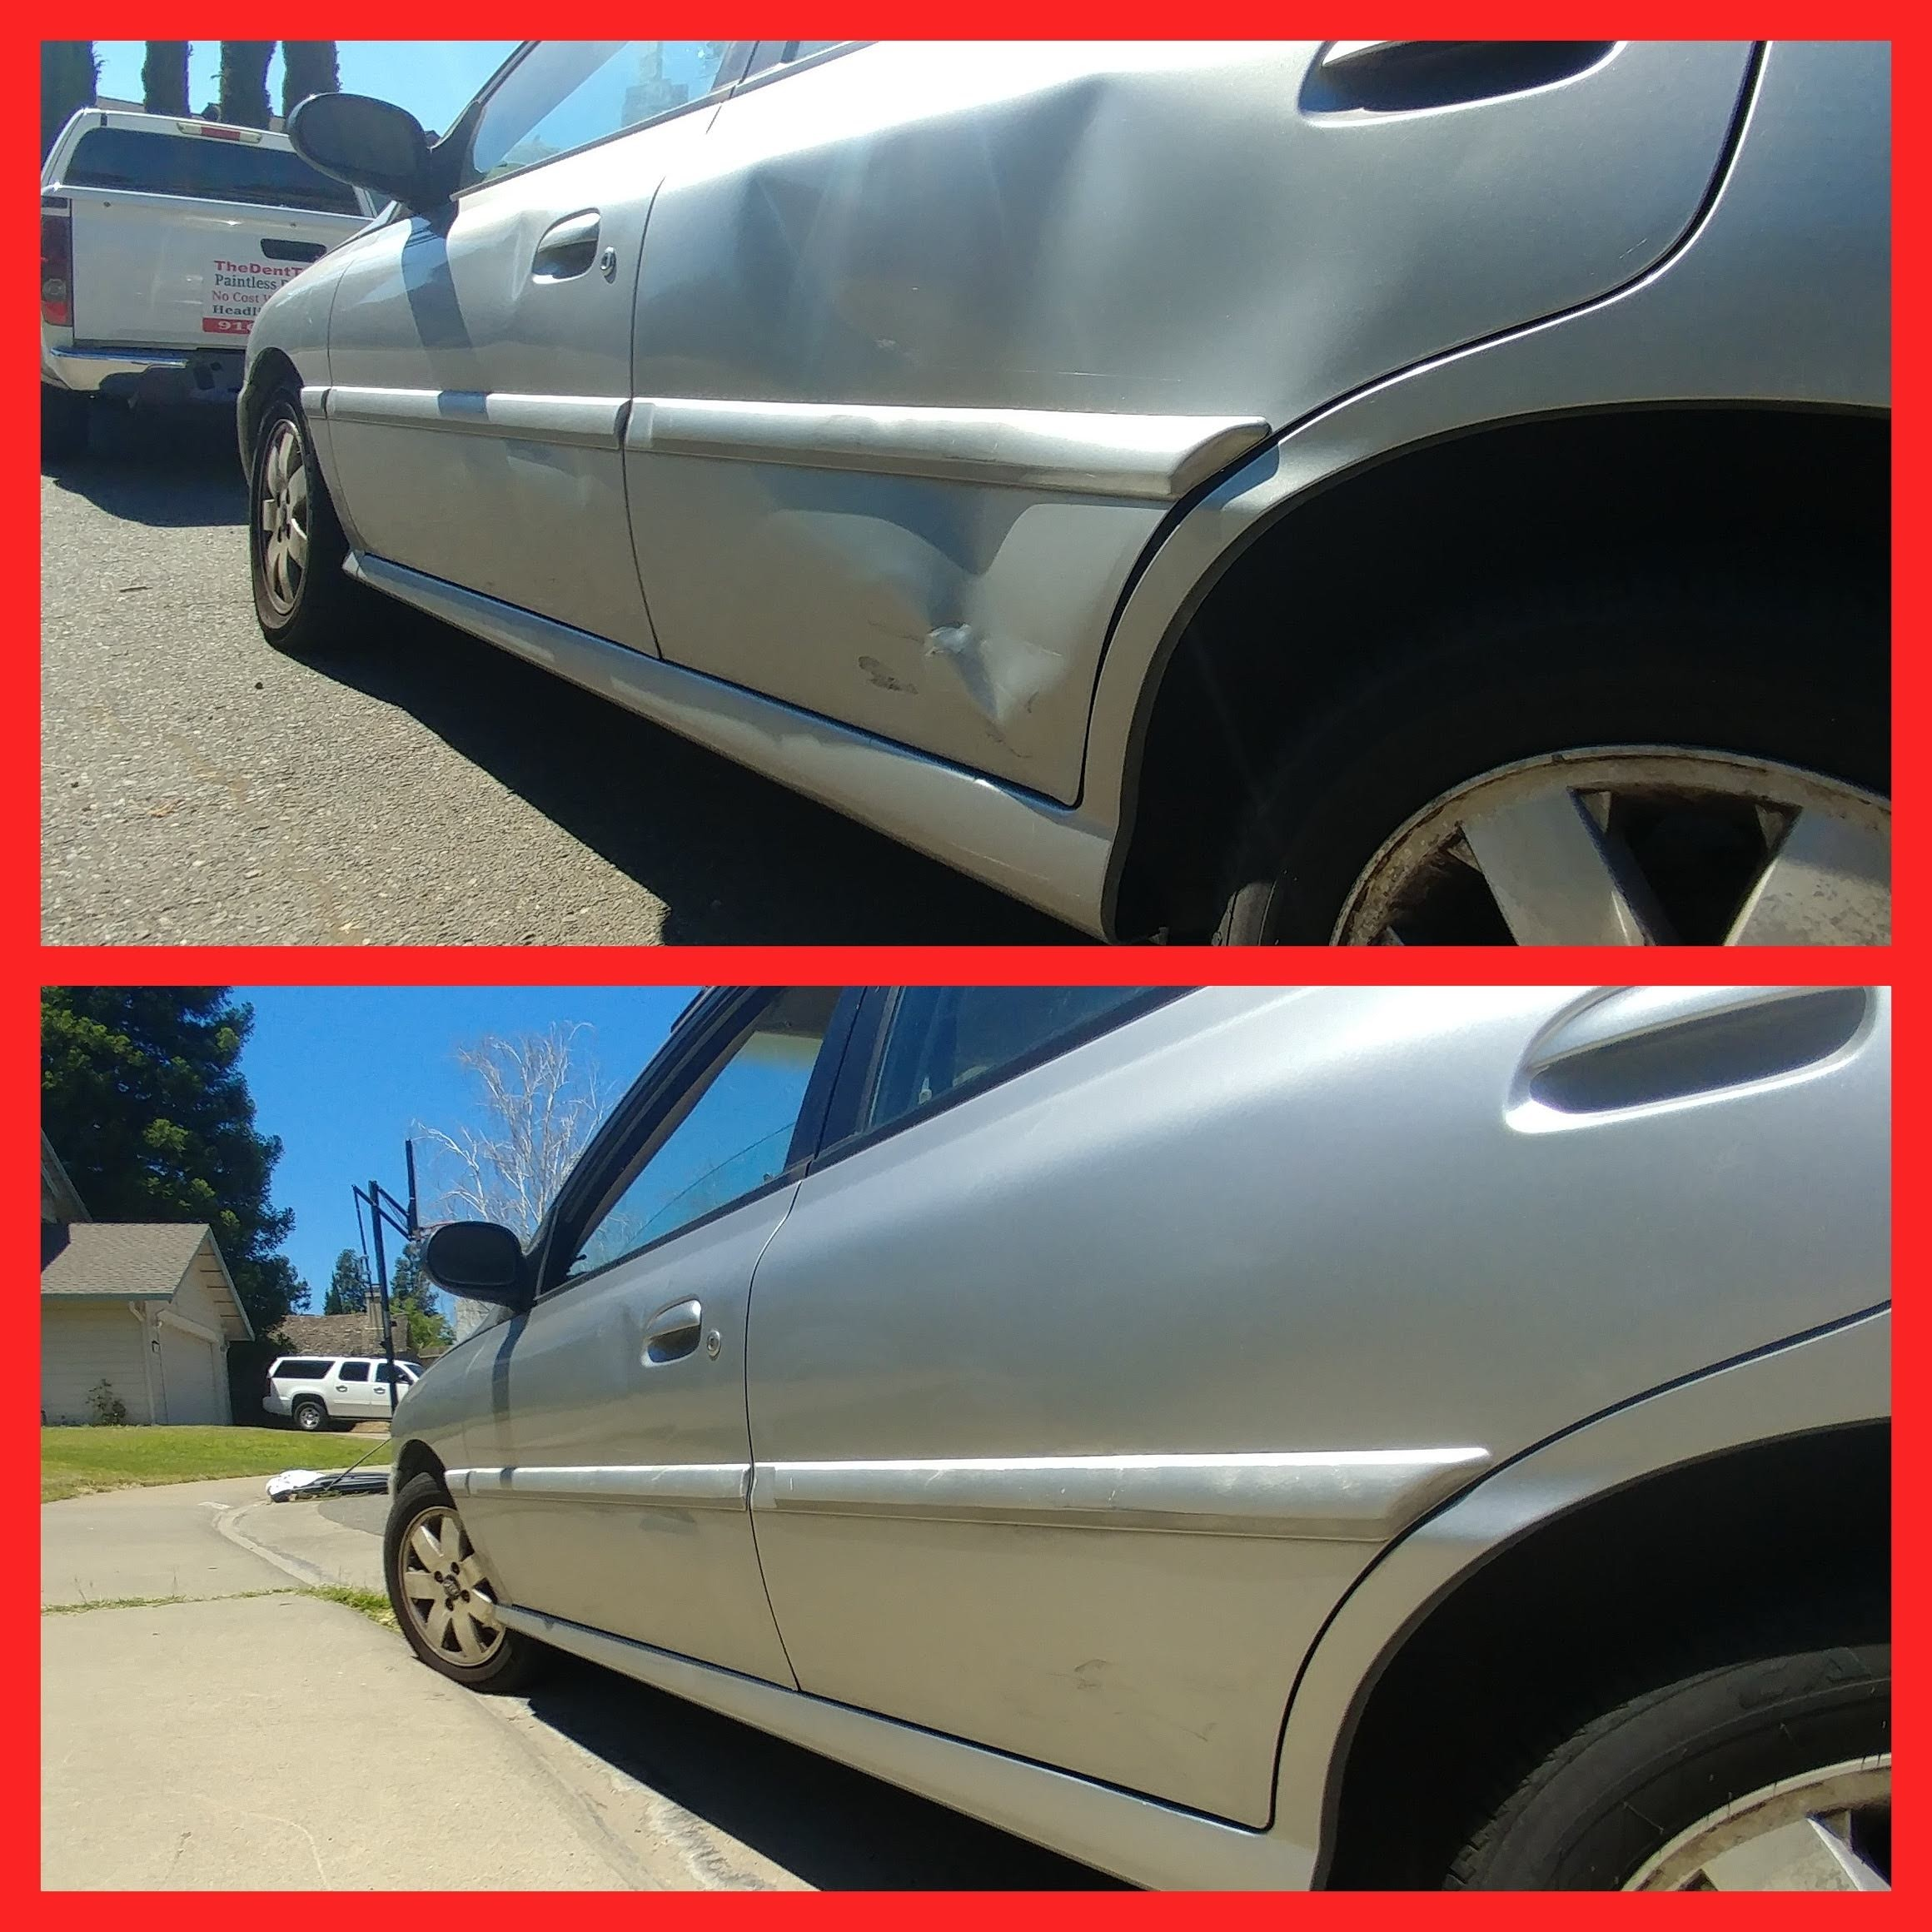 Paintless Dent Removal Cost >> Paintless Dent Removal Trusted Since 2006 Click For Pictures